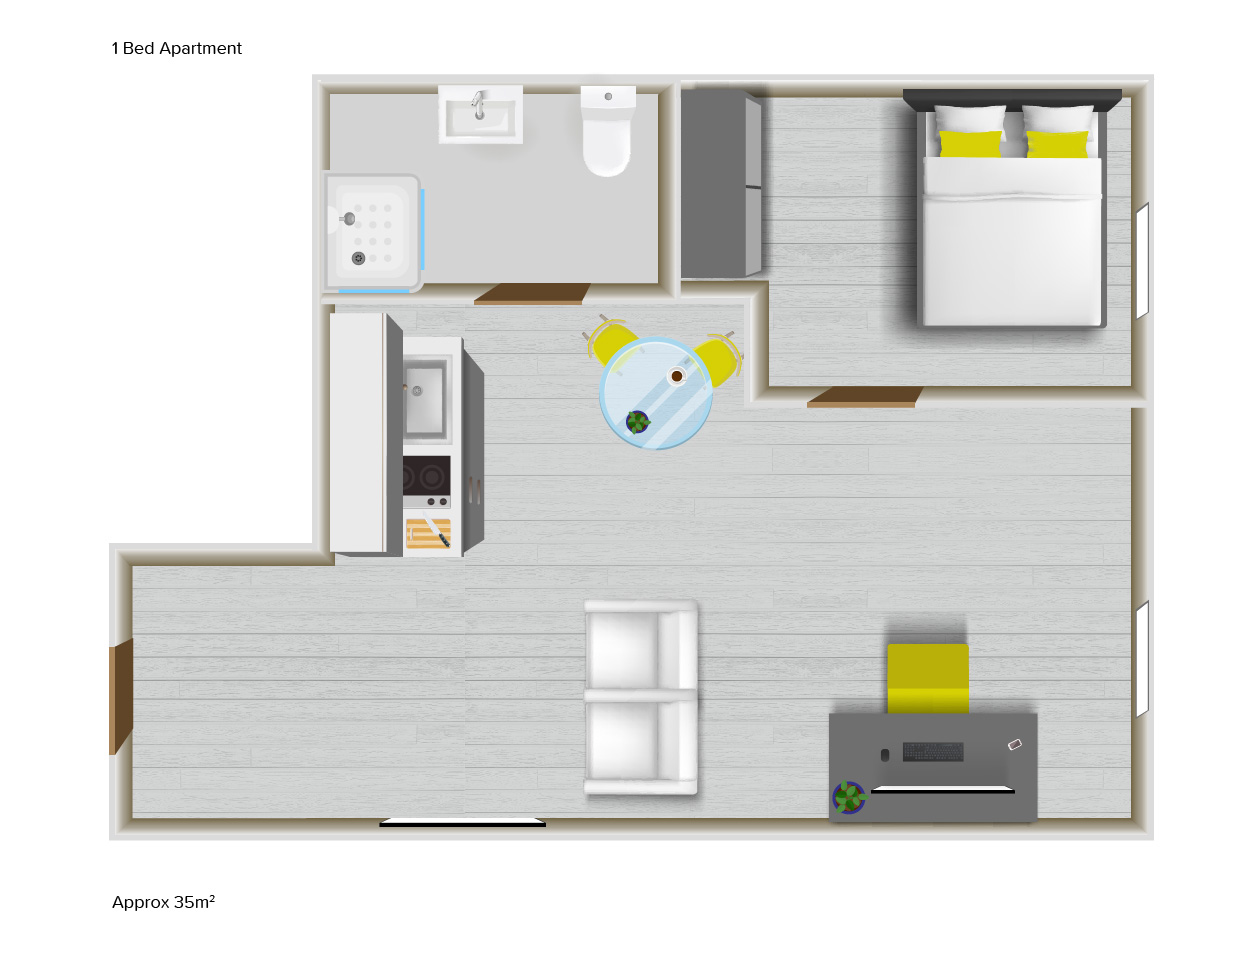 1 Bed Apartment floorplans